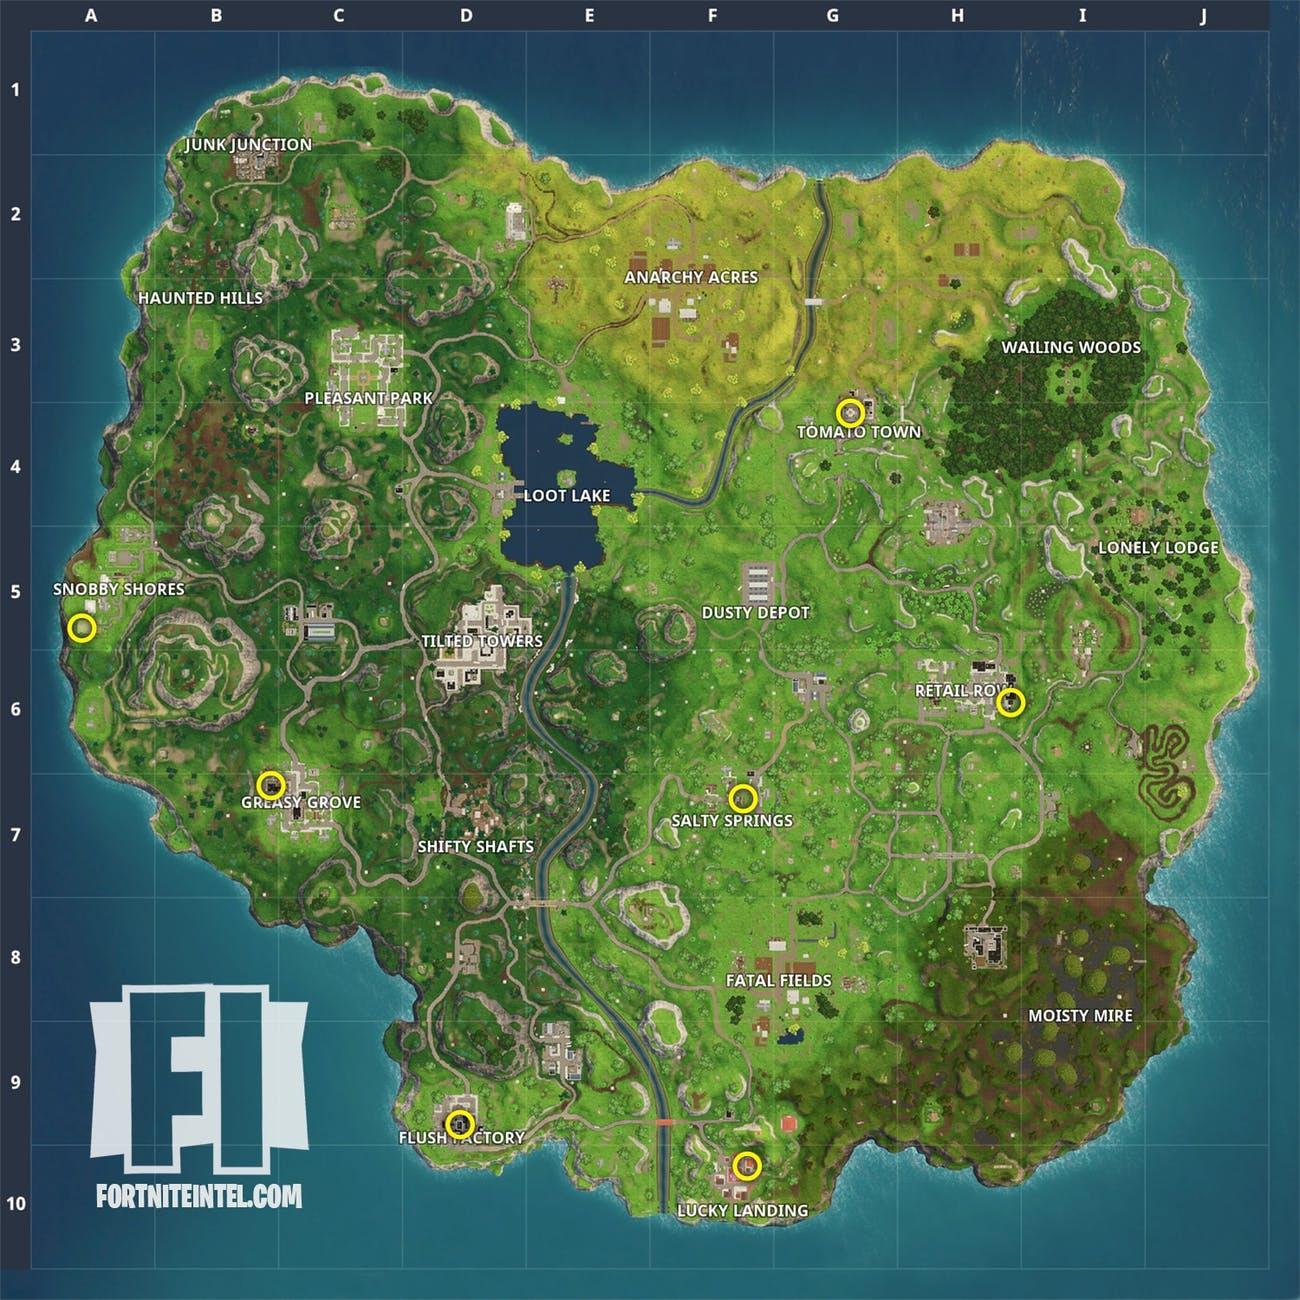 Gnomes pop up in several named locations around the map in 'Fortnite'.